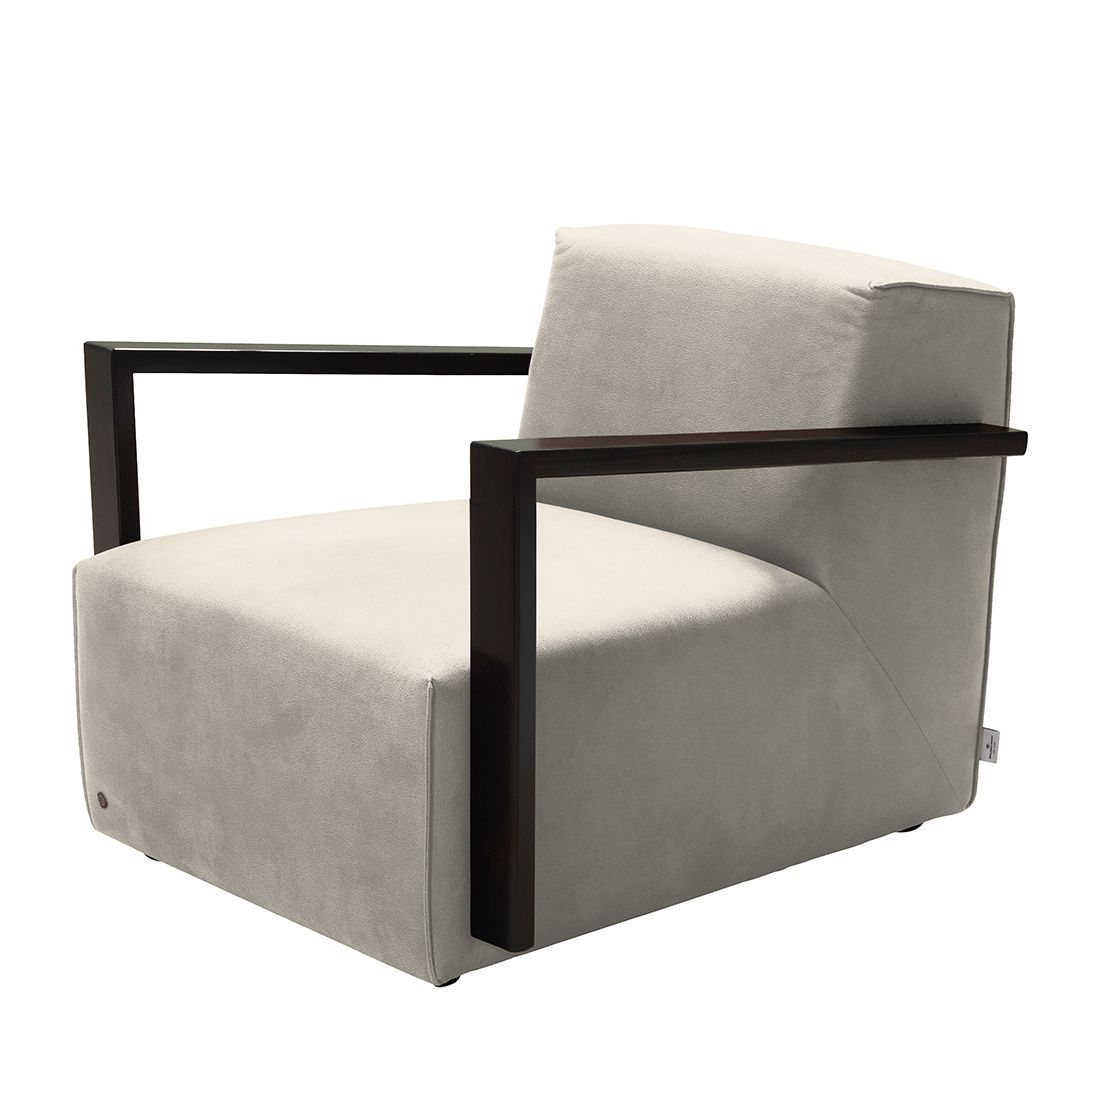 goedkoop Fauteuil Lazy antiekleren look Zonder hocker Beige Tom Tailor